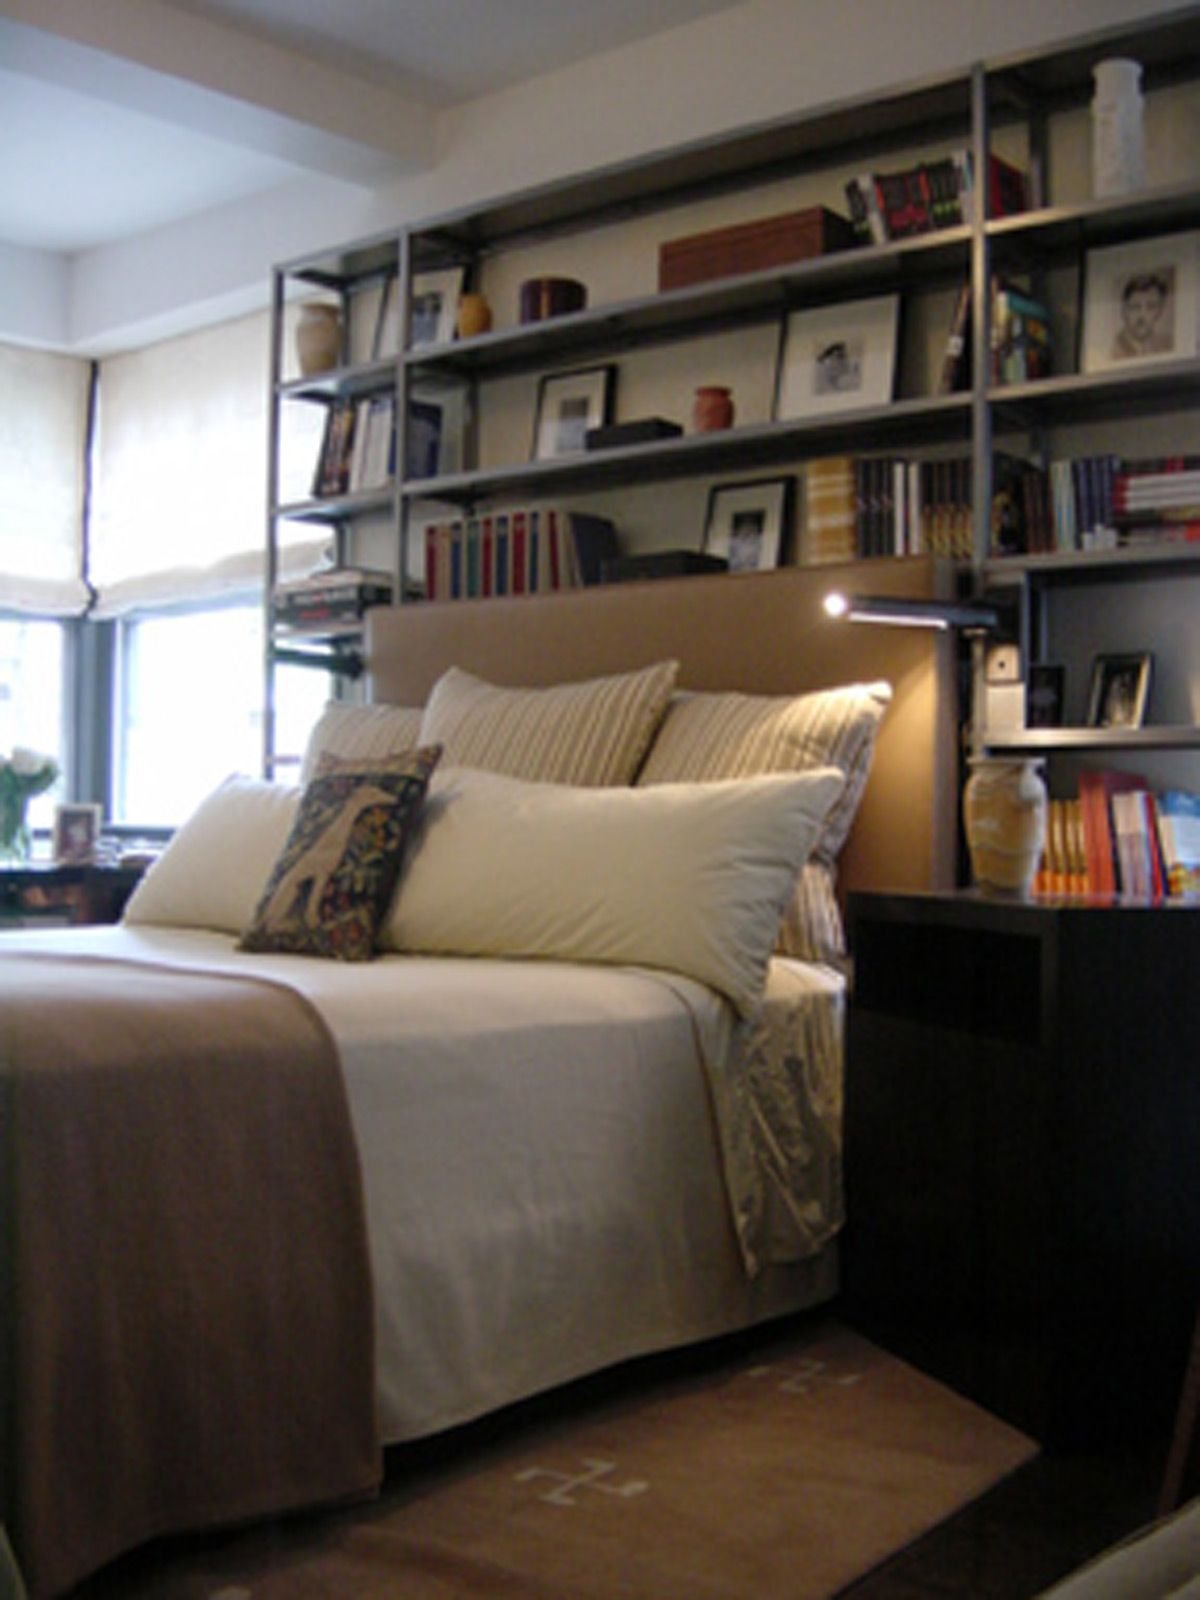 Bookshelves Behind The Bed Home Home Decor Bedroom Decor